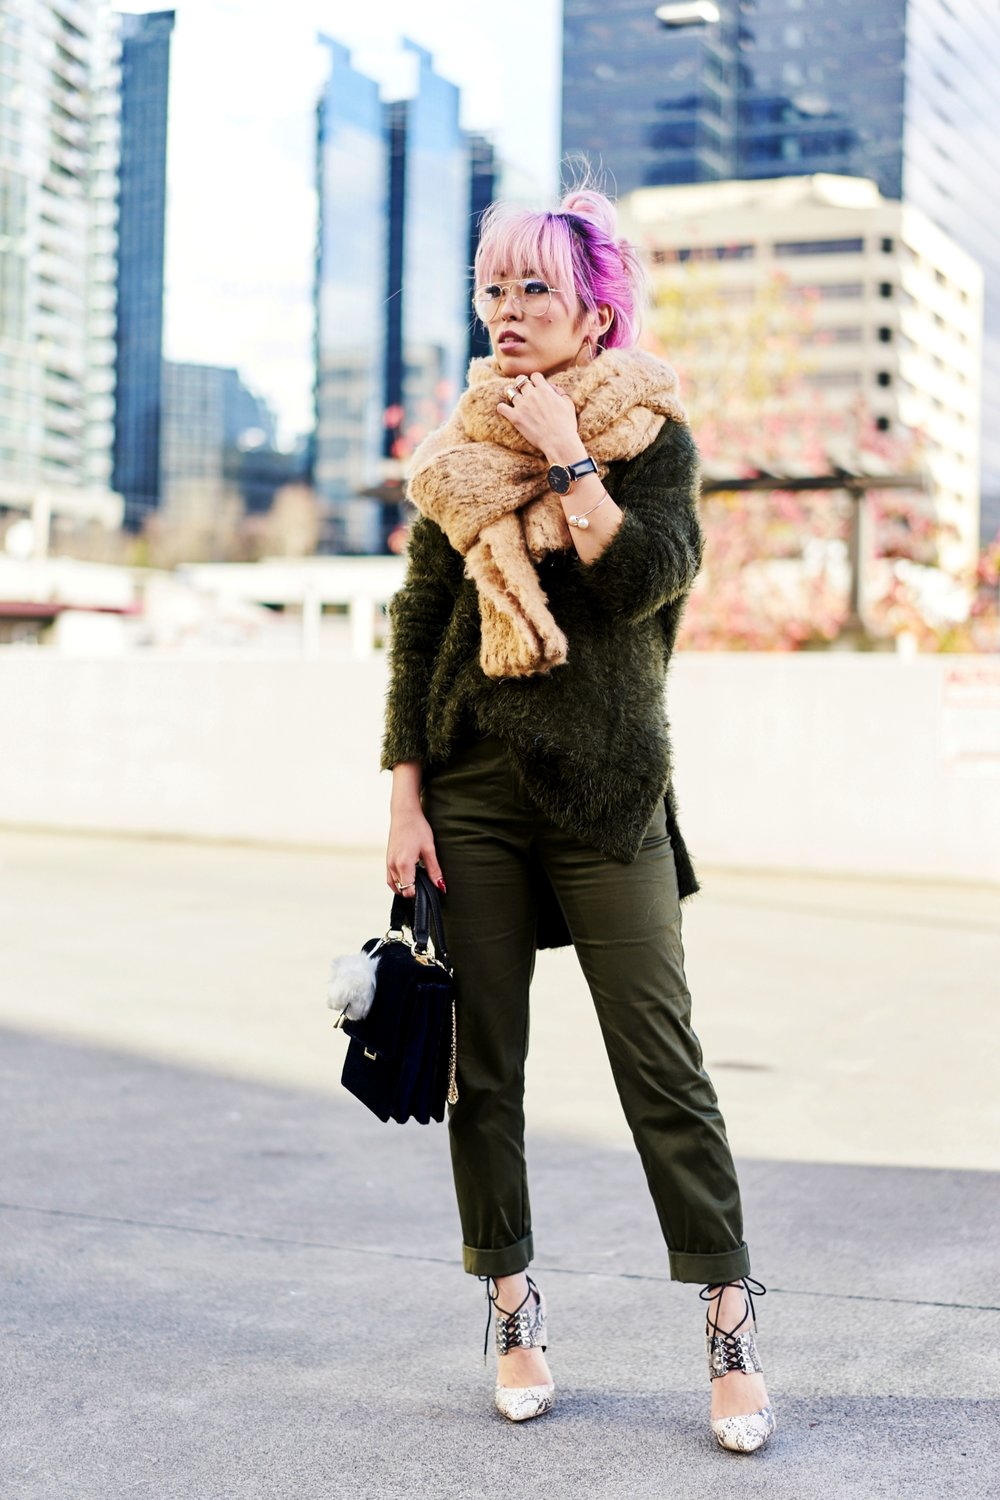 ASOS Oversized Scarf-H&M olive chunky sweater-H&M cropped trousers-ASOS python lace-up pumps-ZARA navy velvet bag-mango earrings-Daniel Wellington Watch-Clear Lens aviator-Aika's Love Closet-Seattle Style blogger-japanese-pink hair-colored hair 10